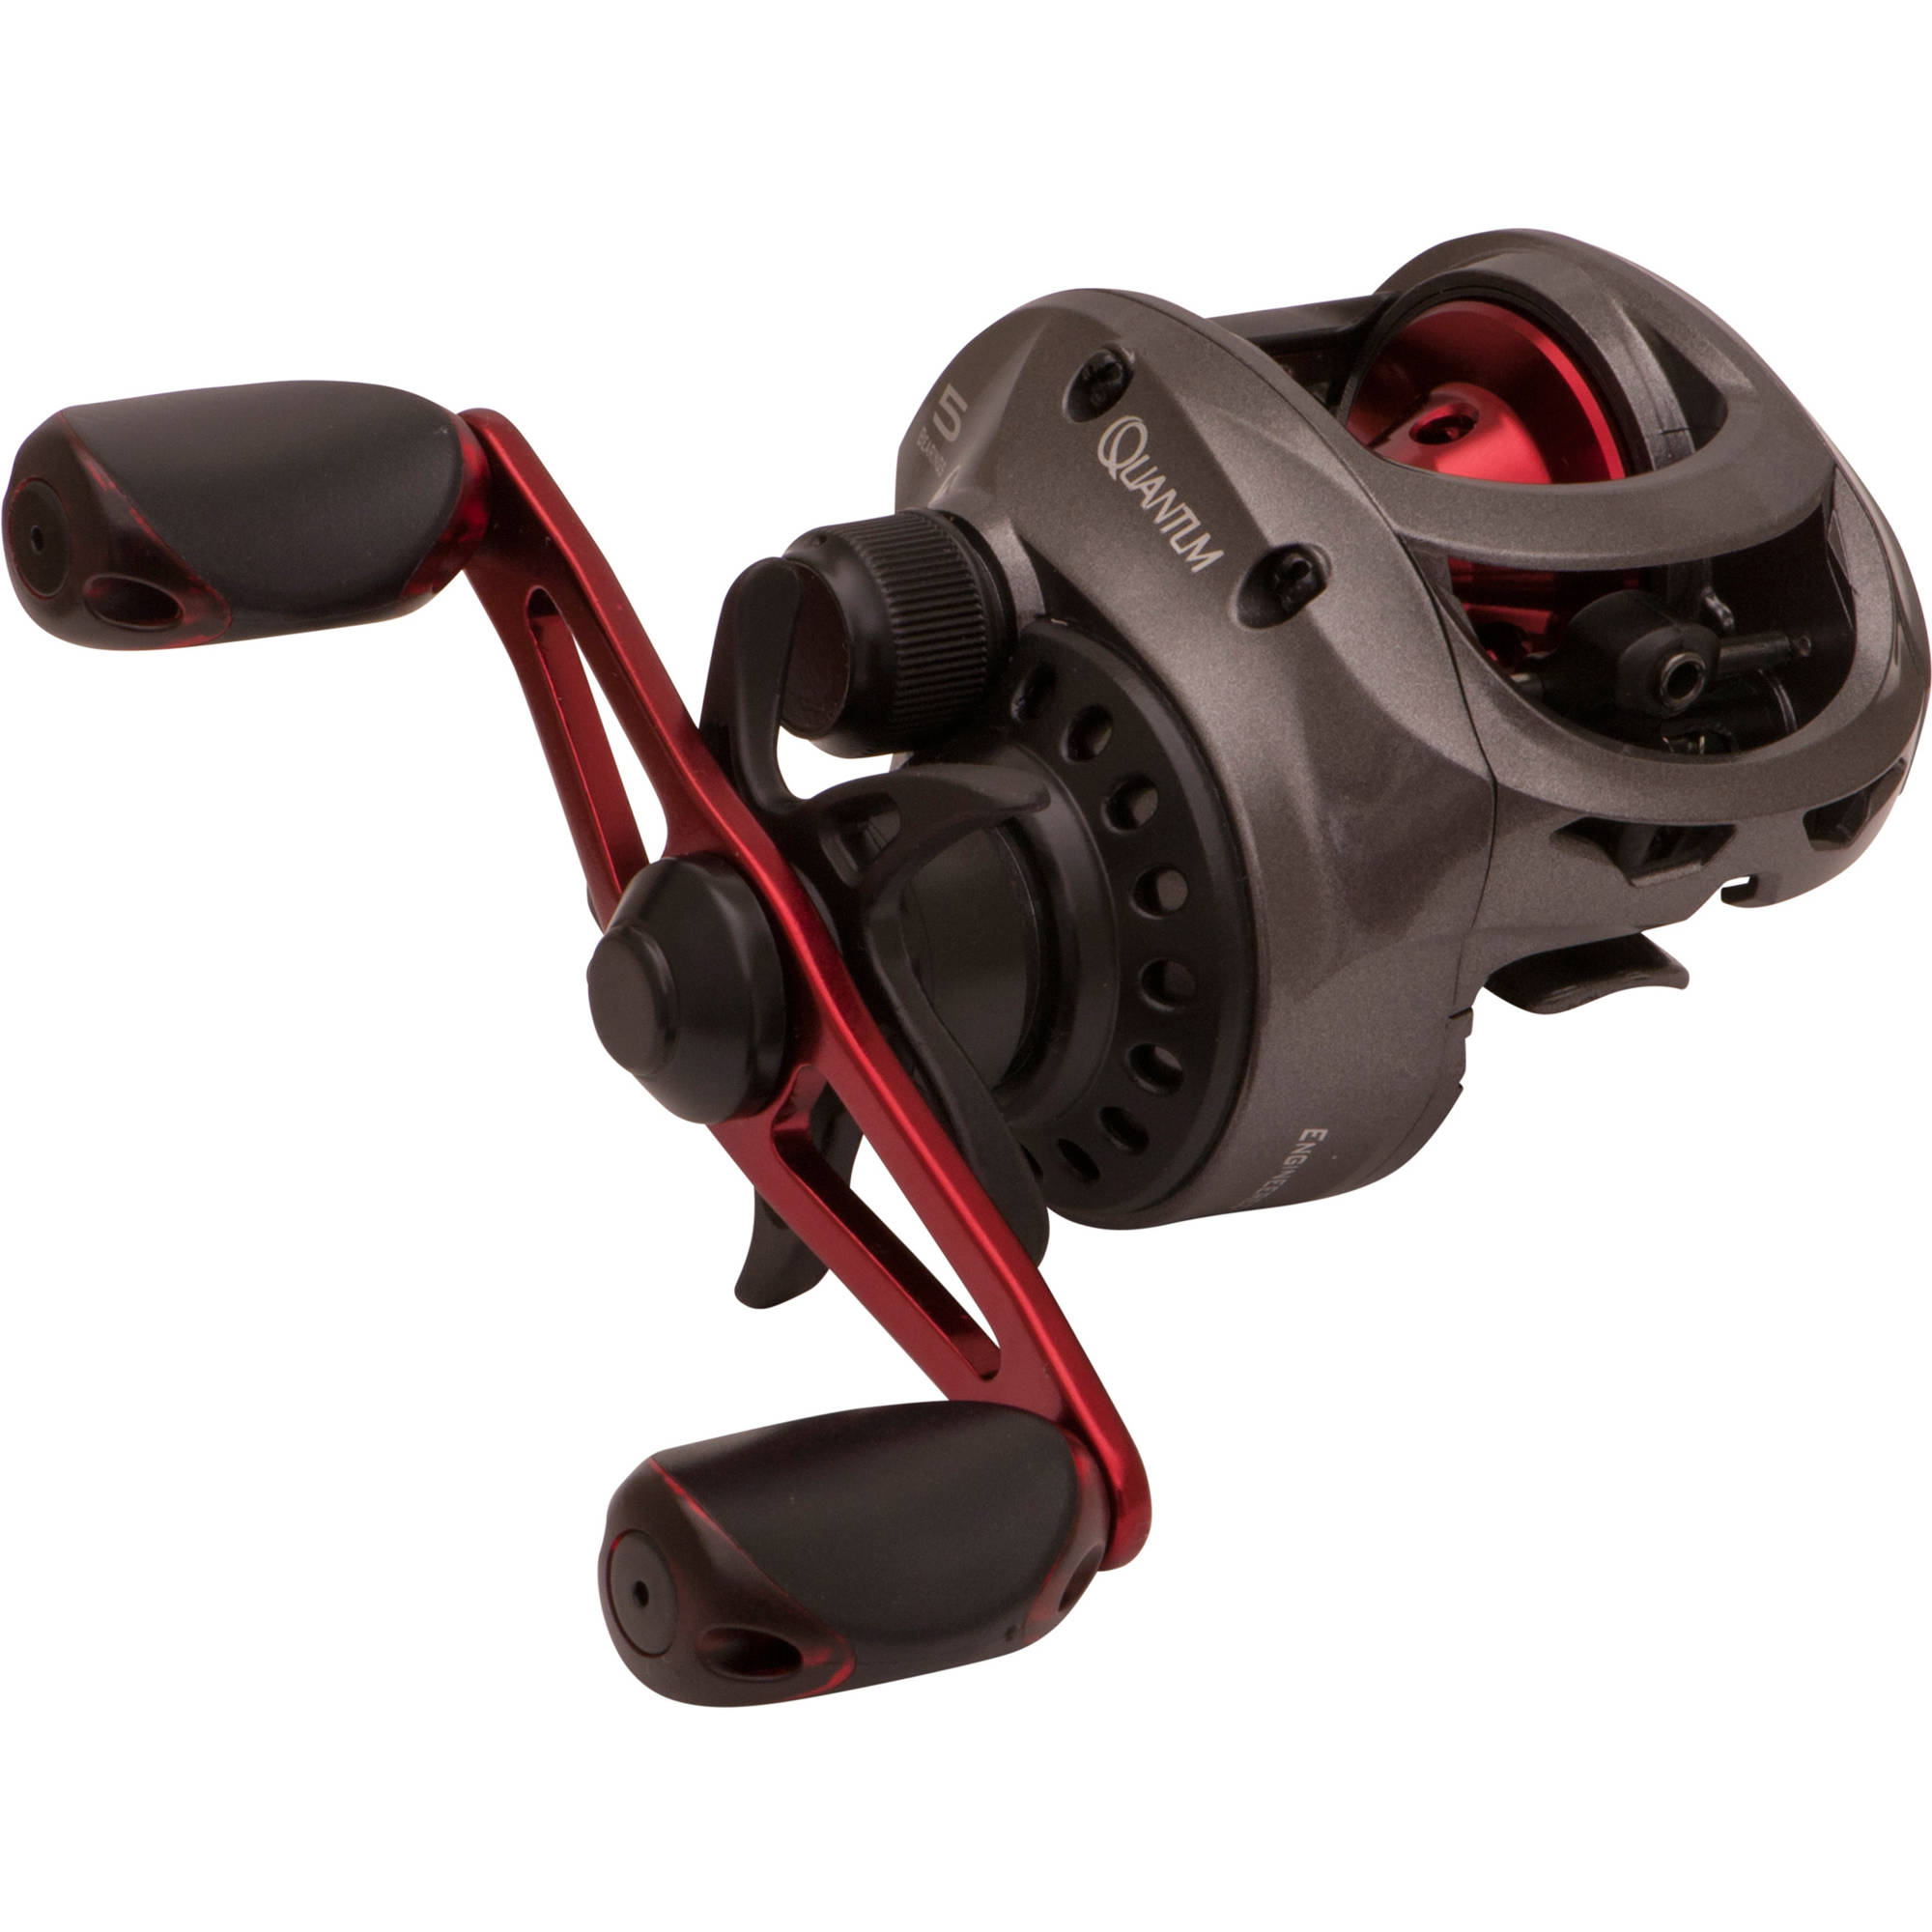 Quantum Pulse Baitcast Reel Right Hand by Zebco Sales Company, LLC.